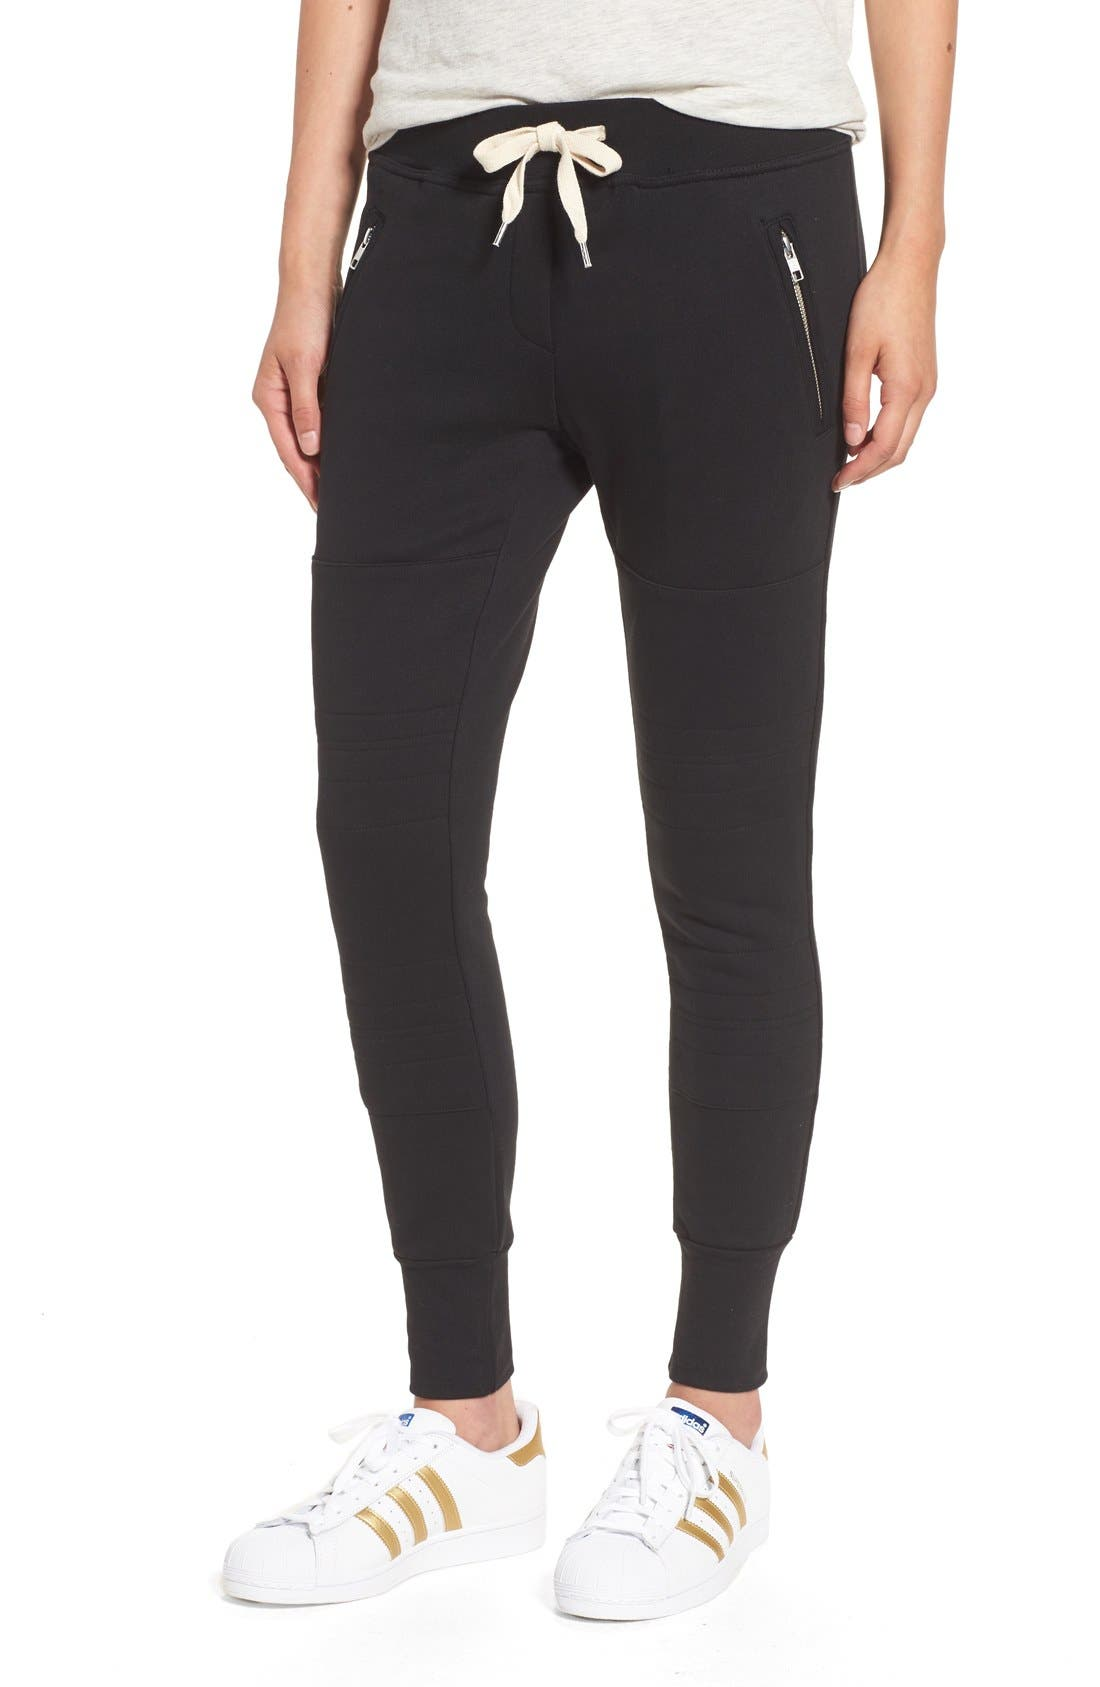 Sincerely Jules 'Lux' Skinny Cotton Jogger Pants